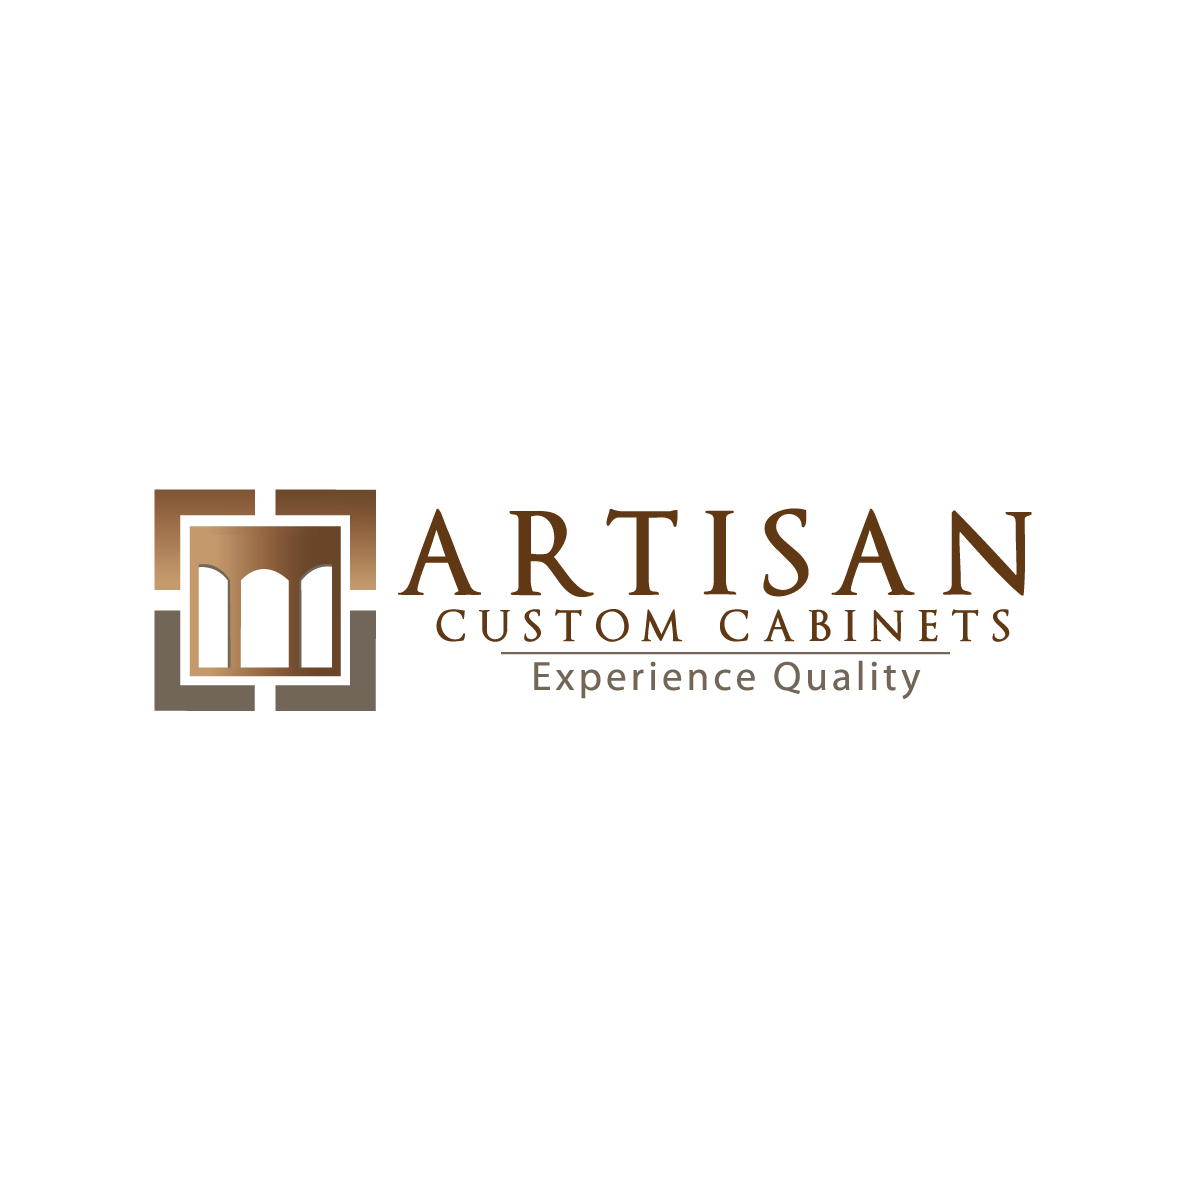 Logo Design by rockin - Entry No. 105 in the Logo Design Contest Creative Logo Design for Artisan Custom Cabinets.